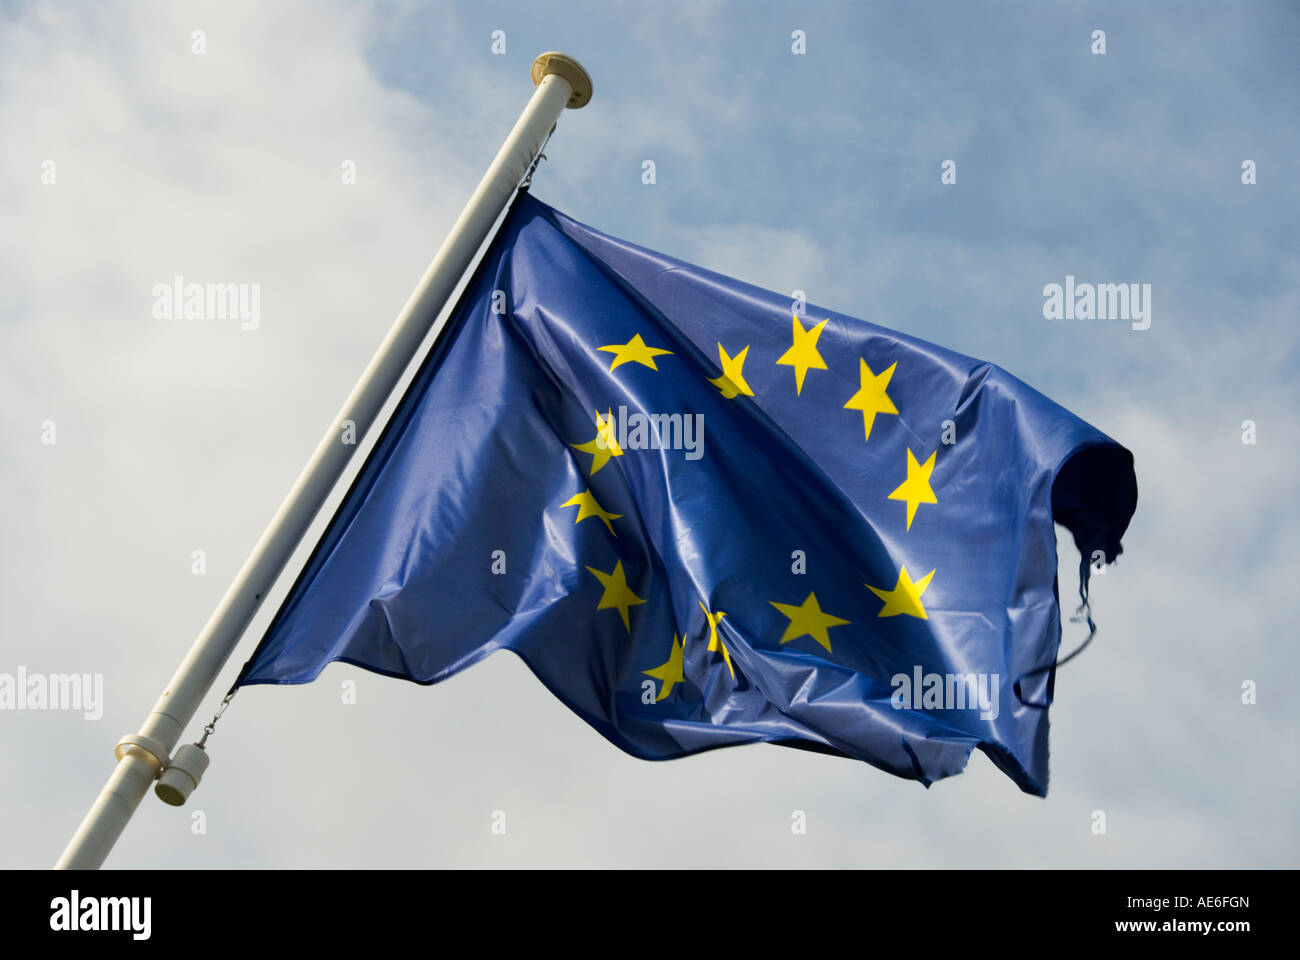 Image of the European Union Flag - Stock Image